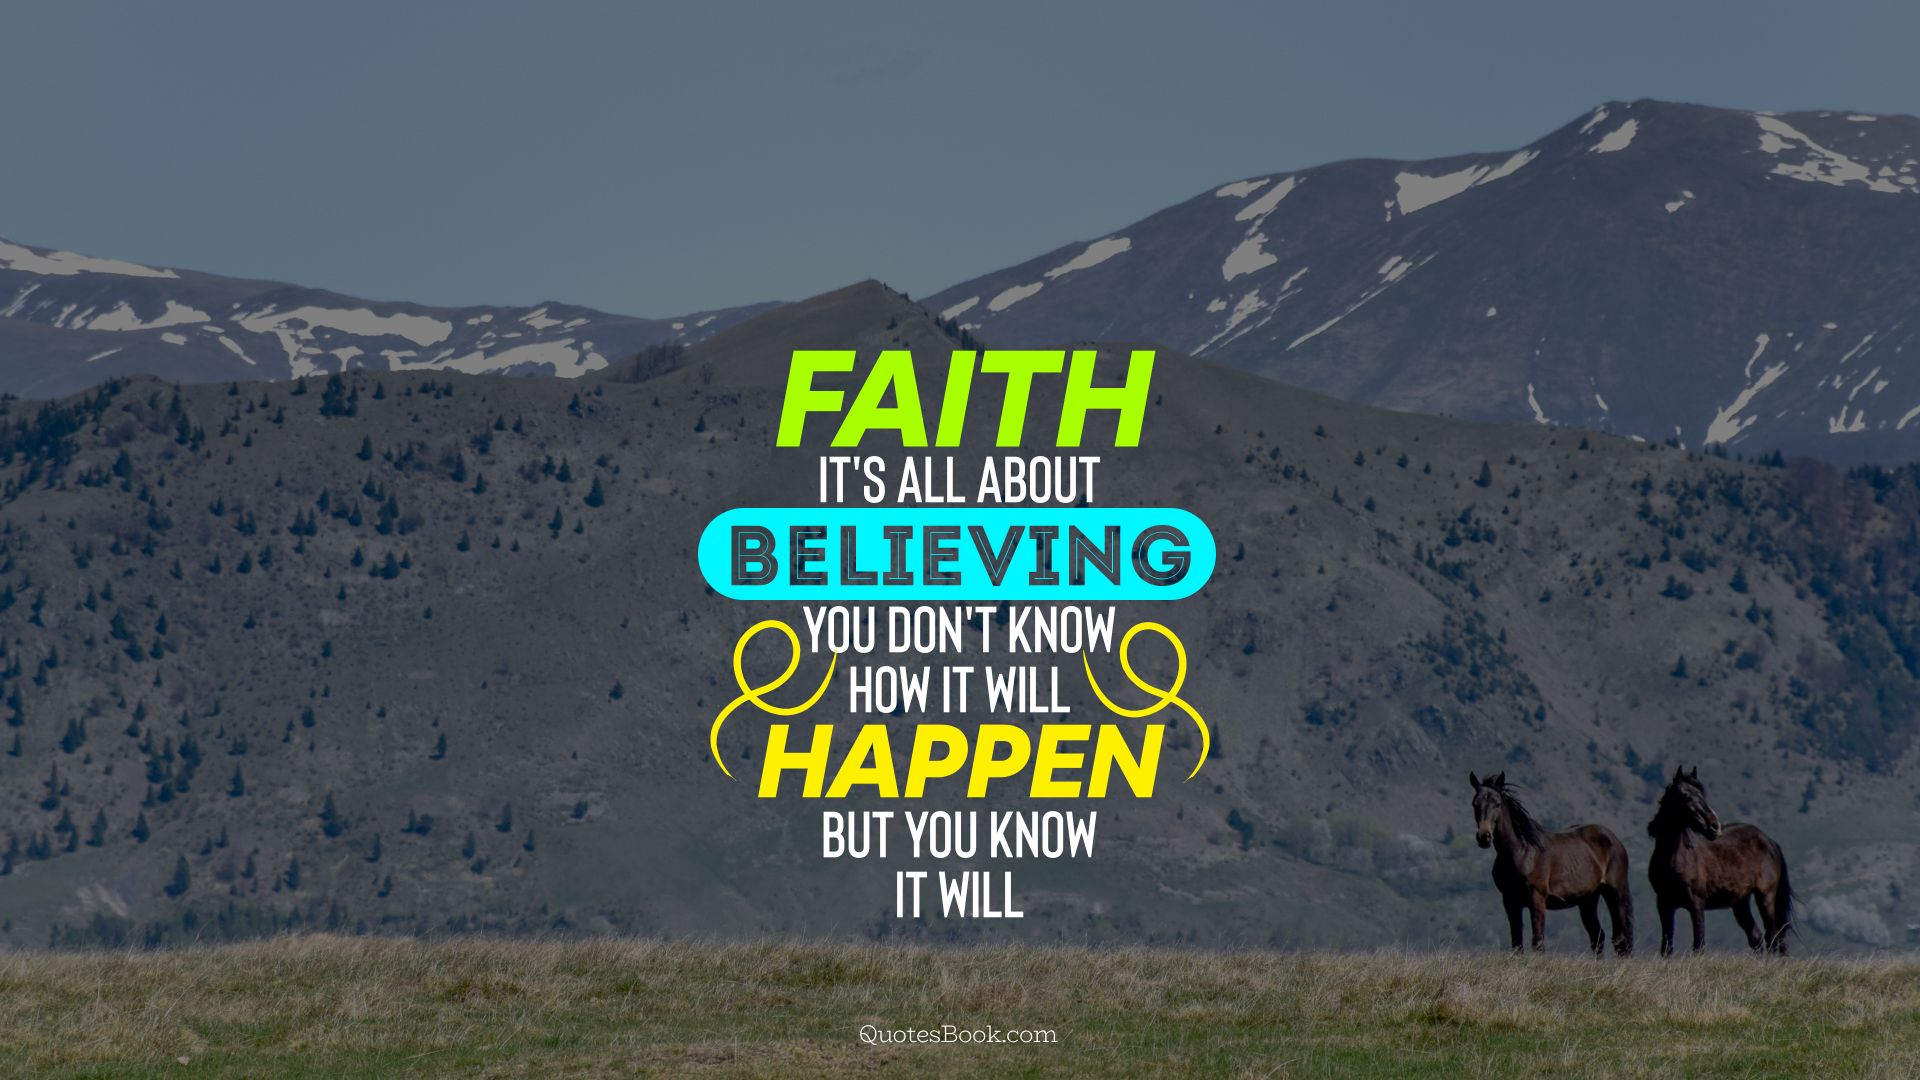 Faith it's all about believing you don't know how it will happen but you know it will